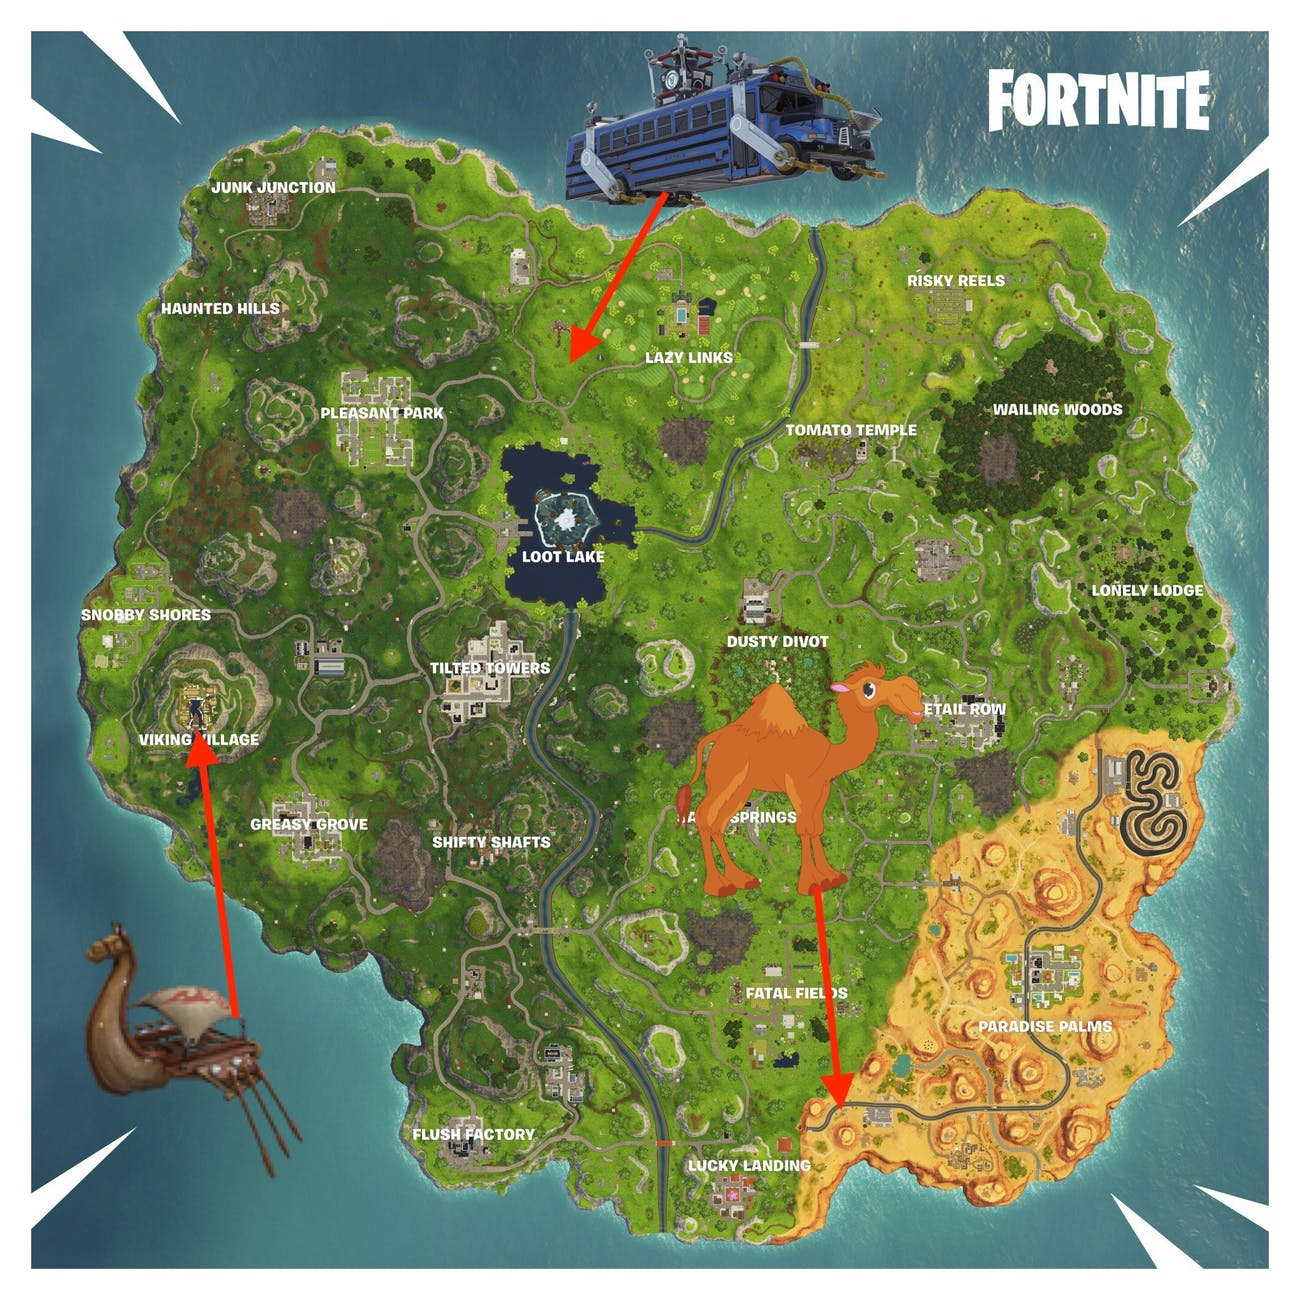 Fortnite Camel Crashed Battle Bus Locations Map And Video For